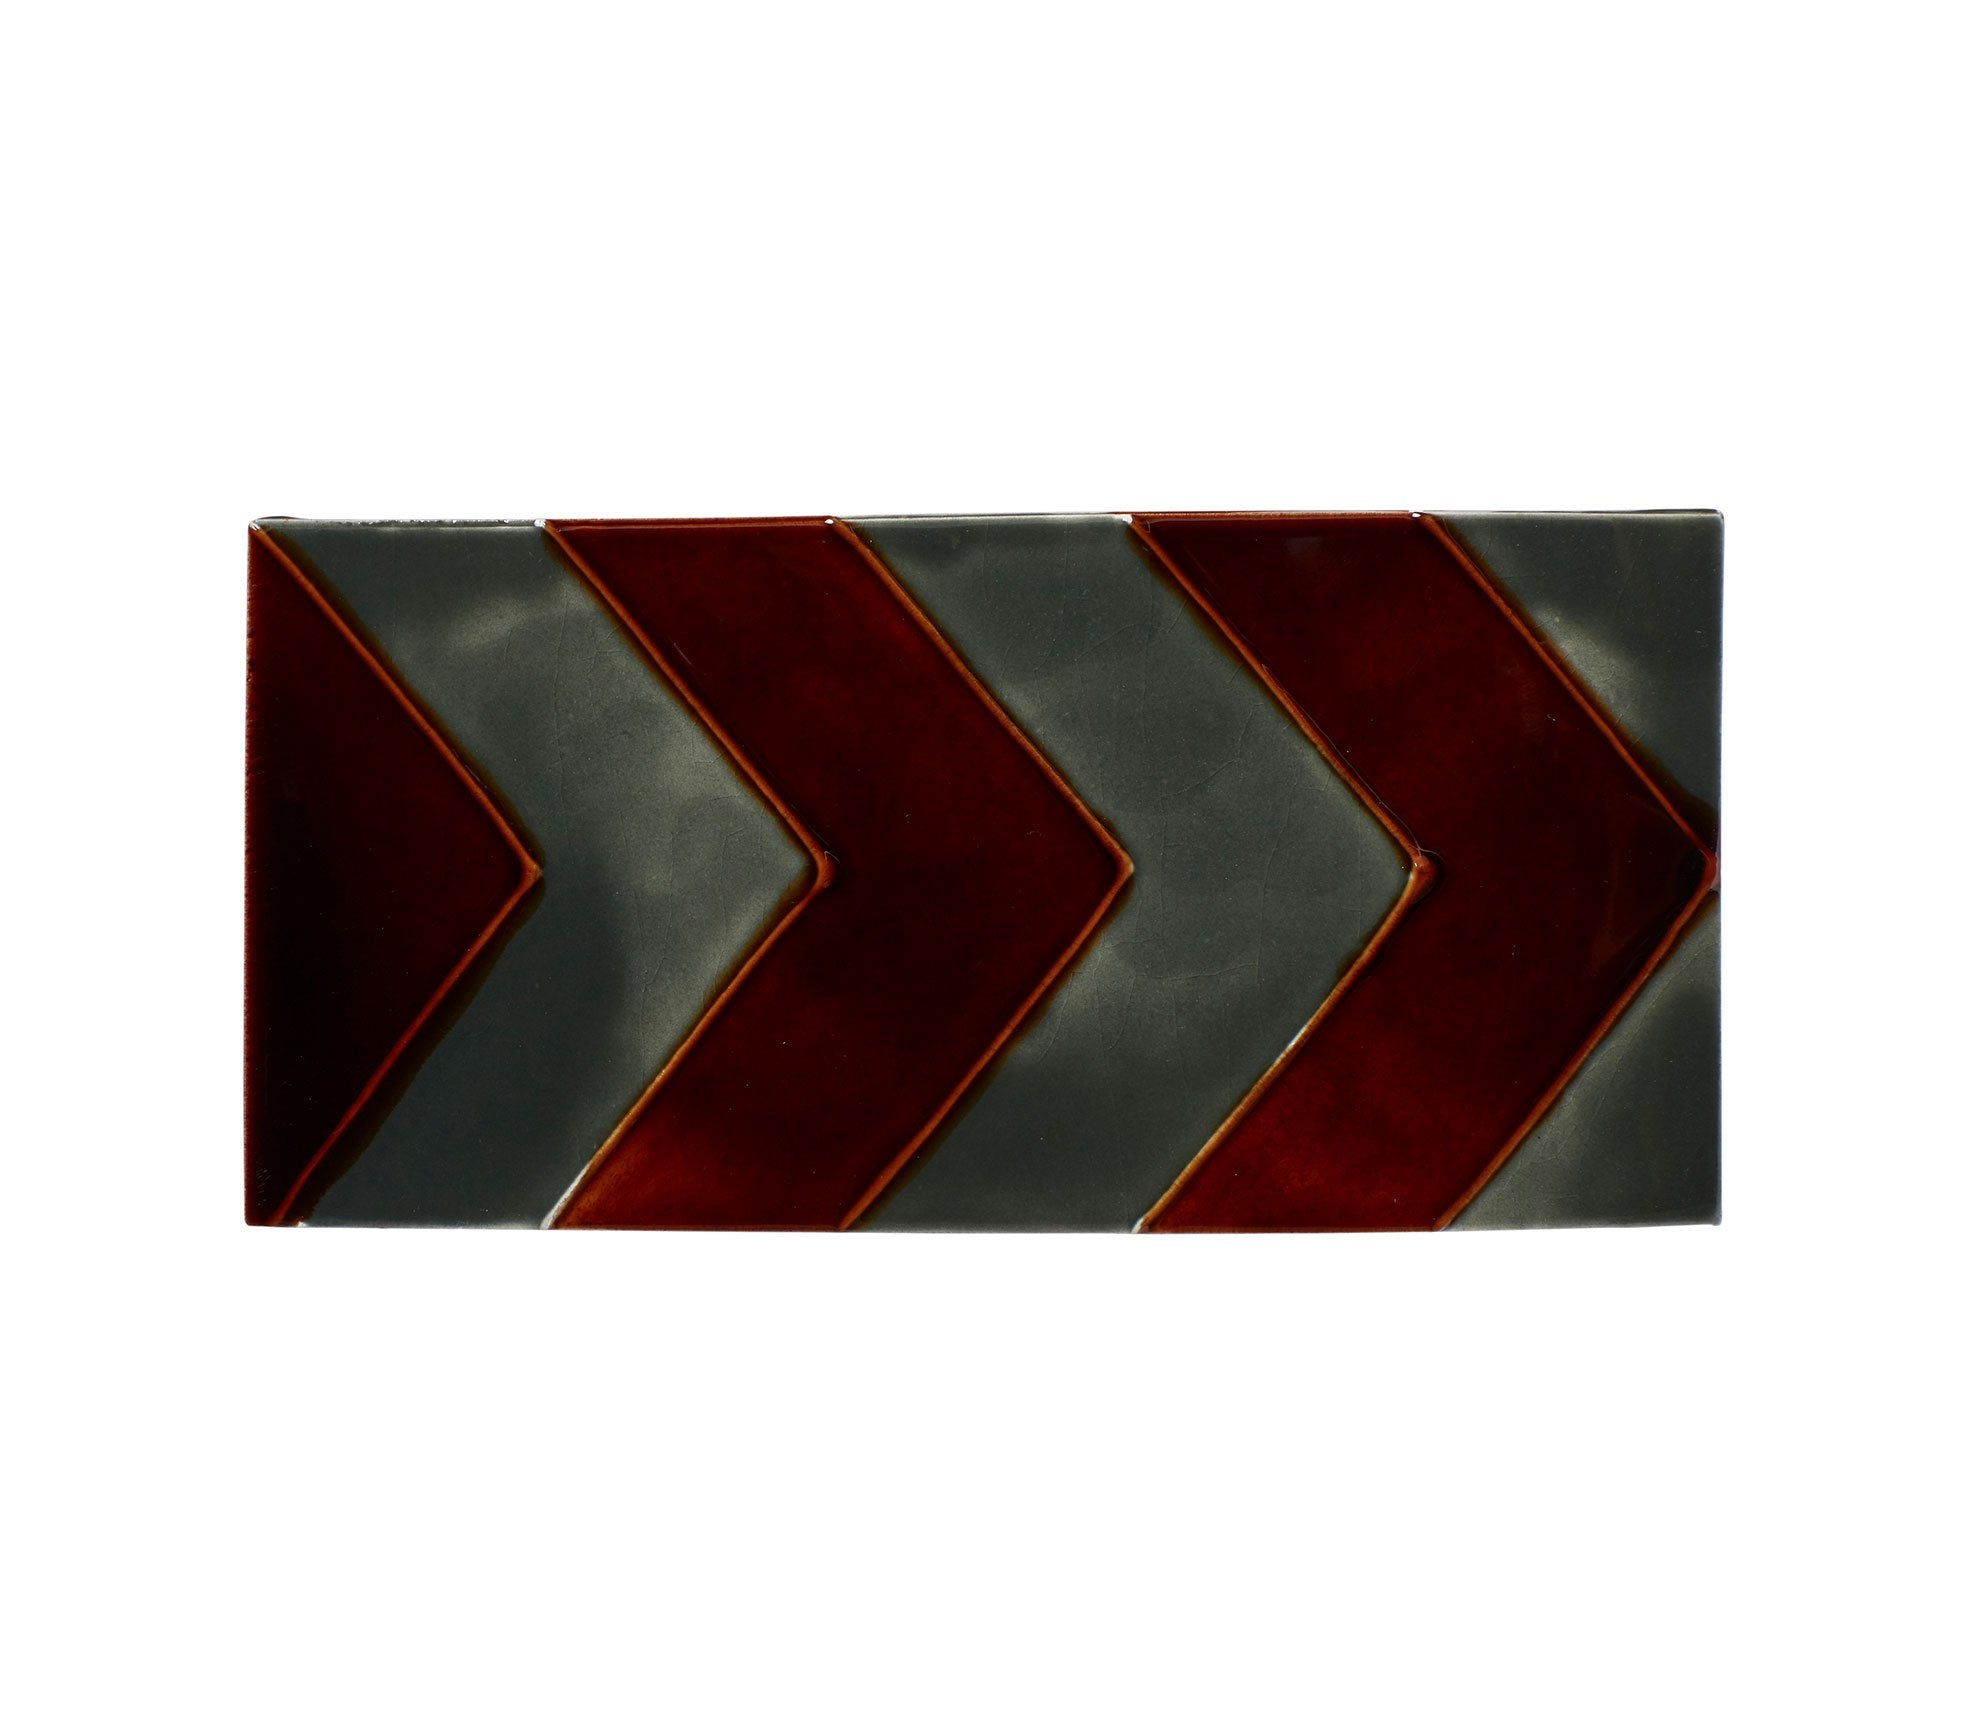 Hanley Tube Lined Decorative Tiles Product Image 14